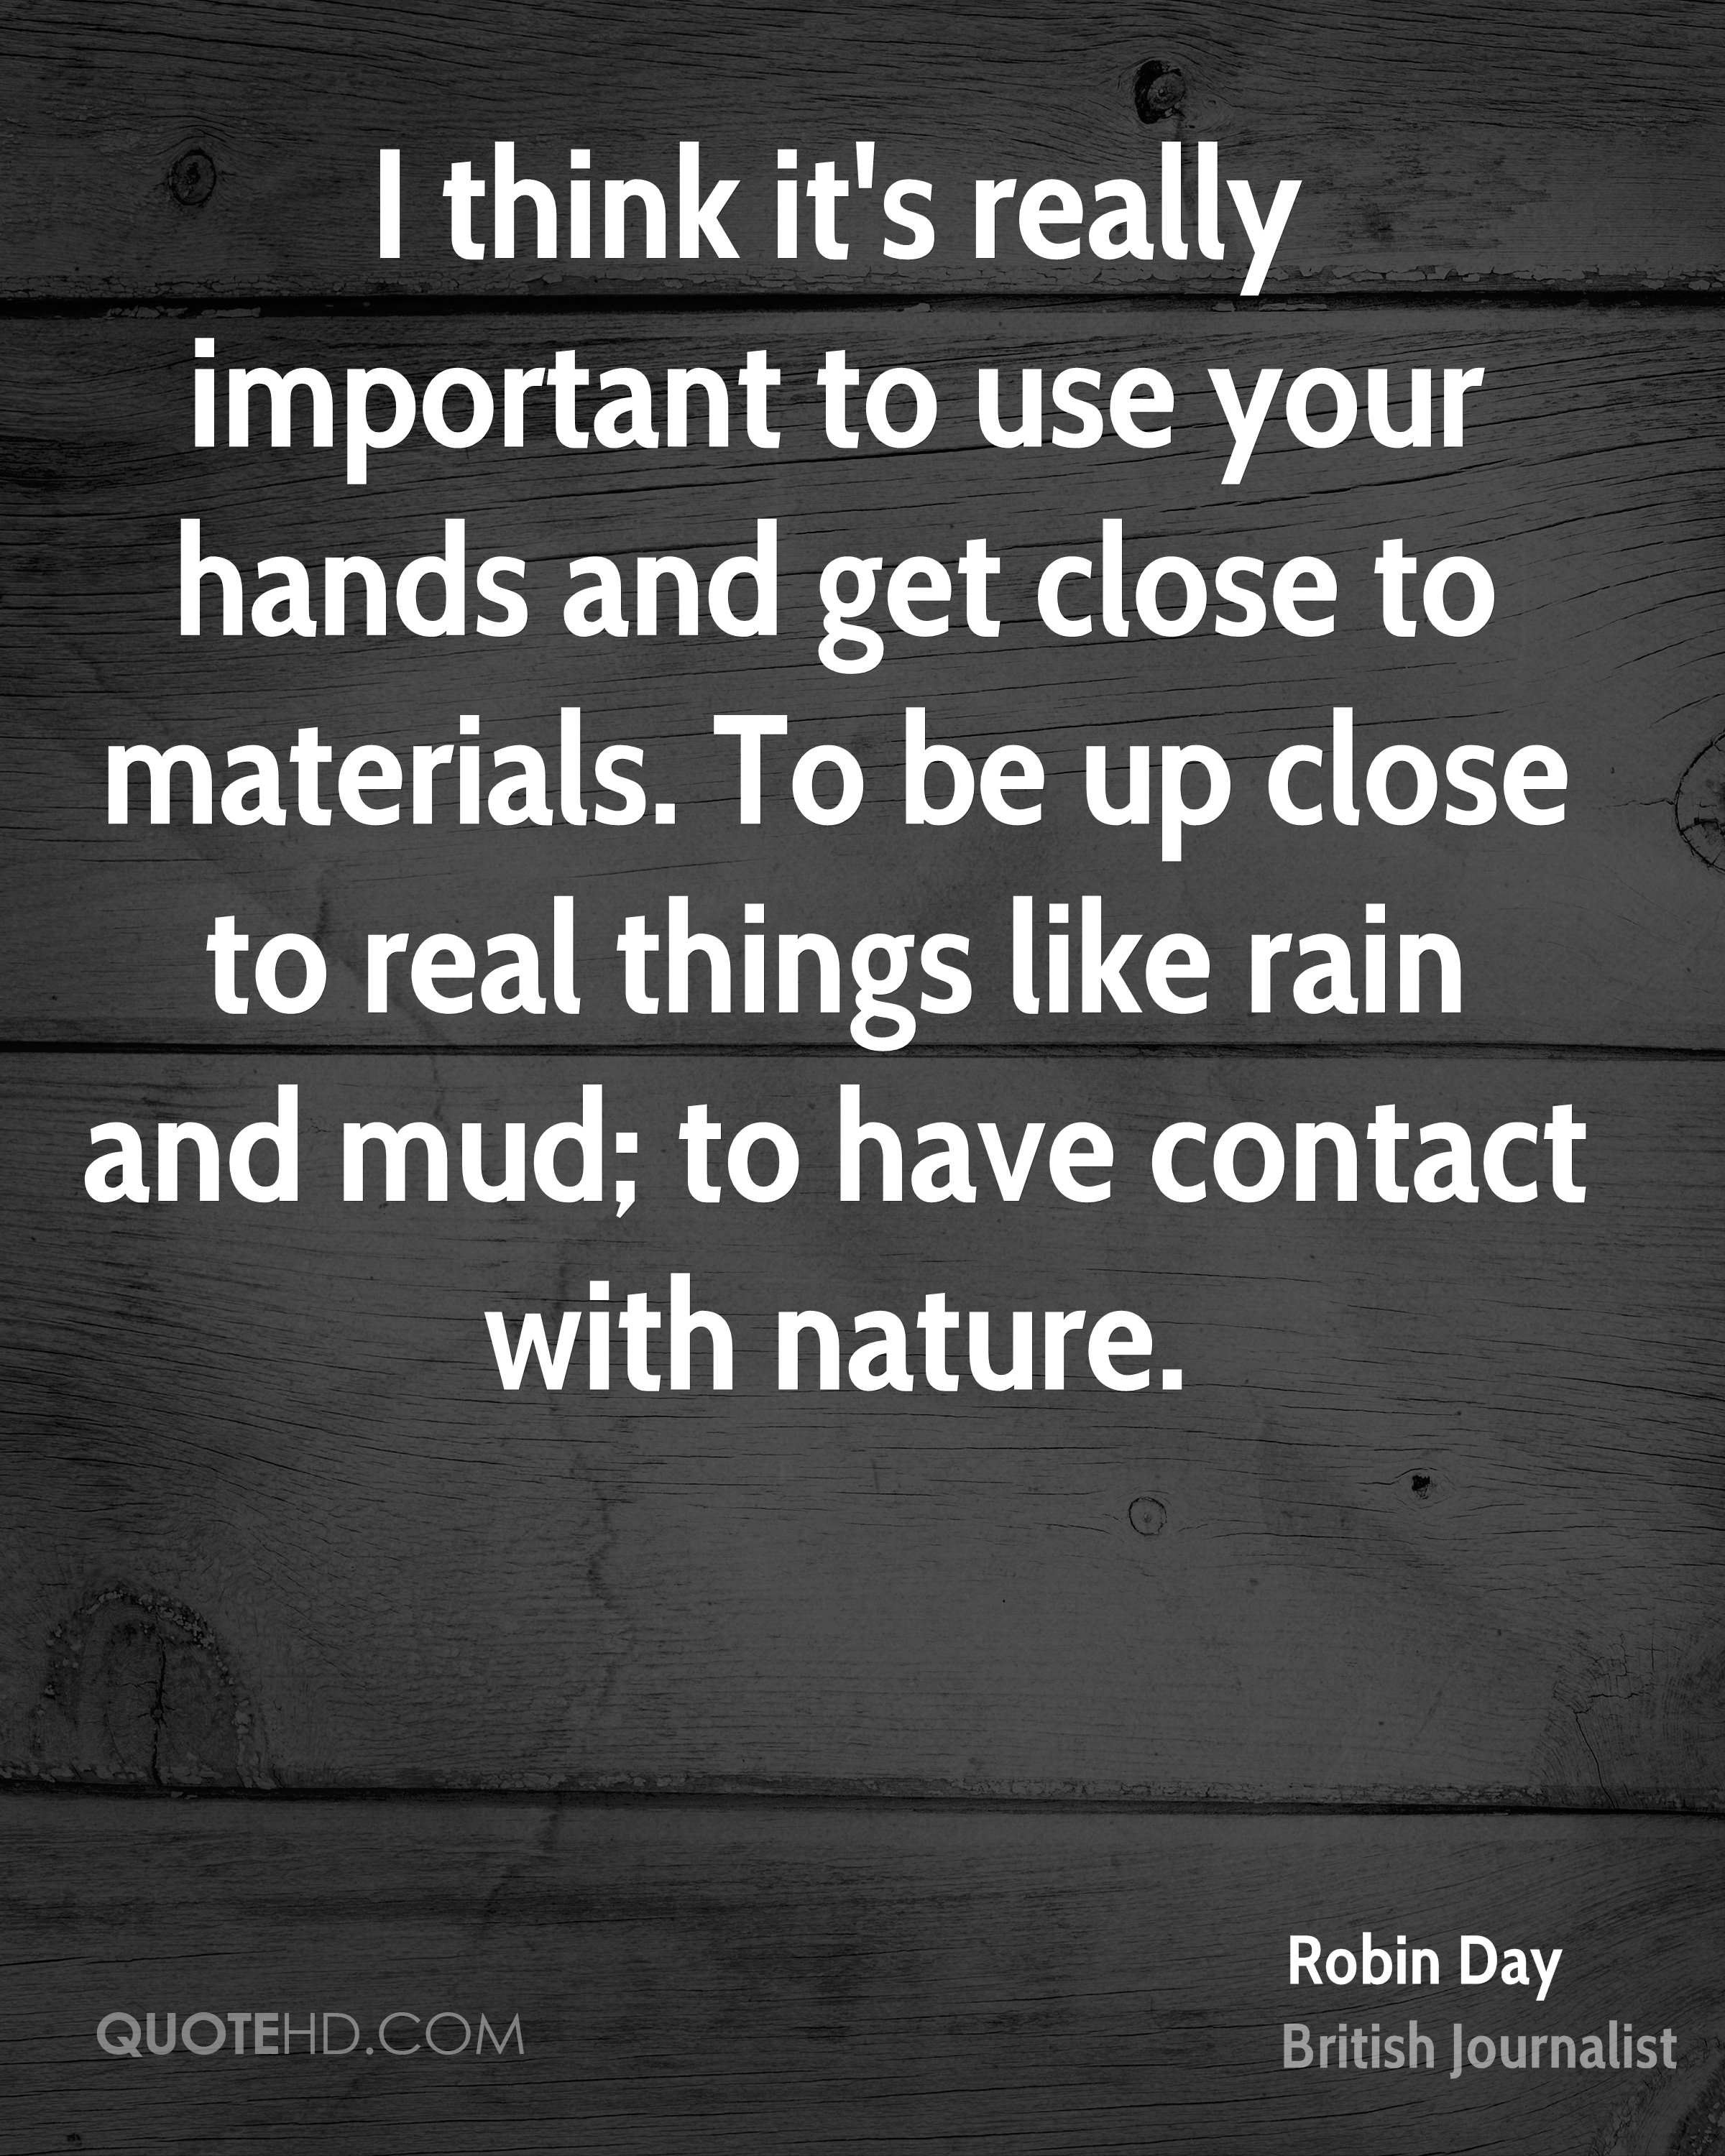 I think it's really important to use your hands and get close to materials. To be up close to real things like rain and mud; to have contact with nature.